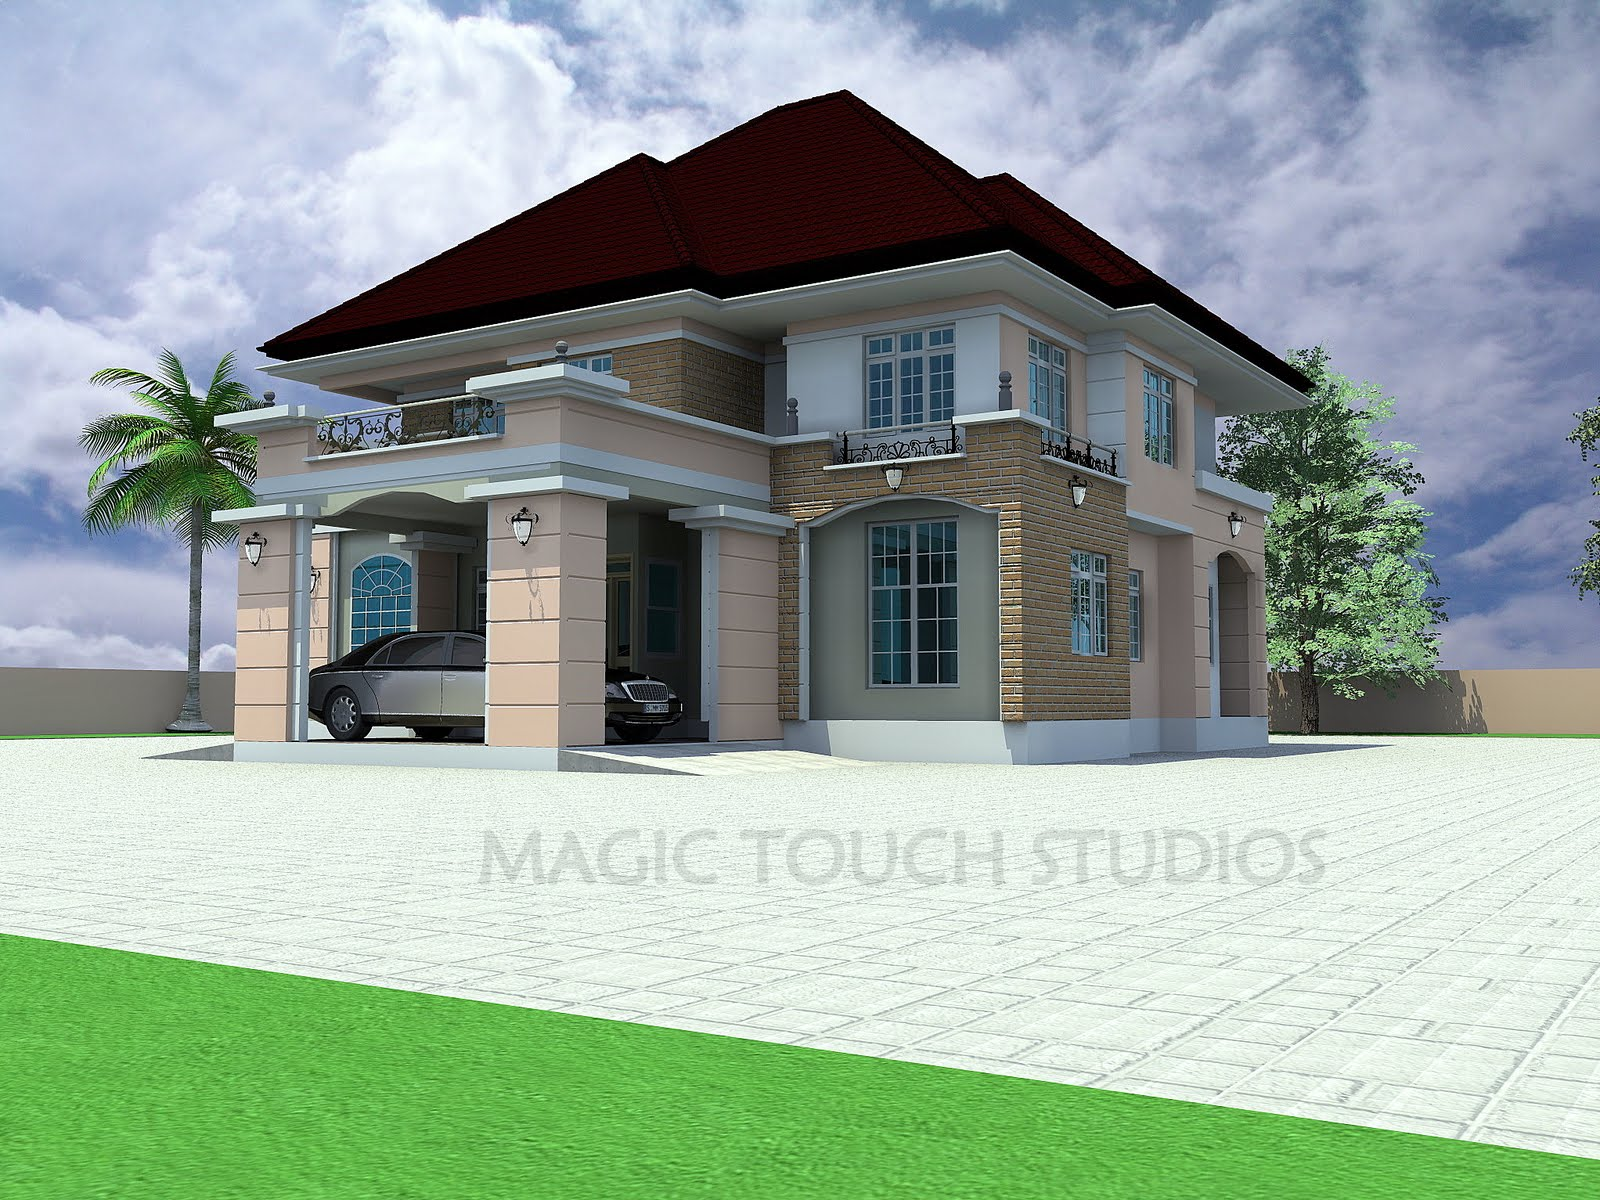 5 bedroom duplex residential homes and public designs for New duplex designs